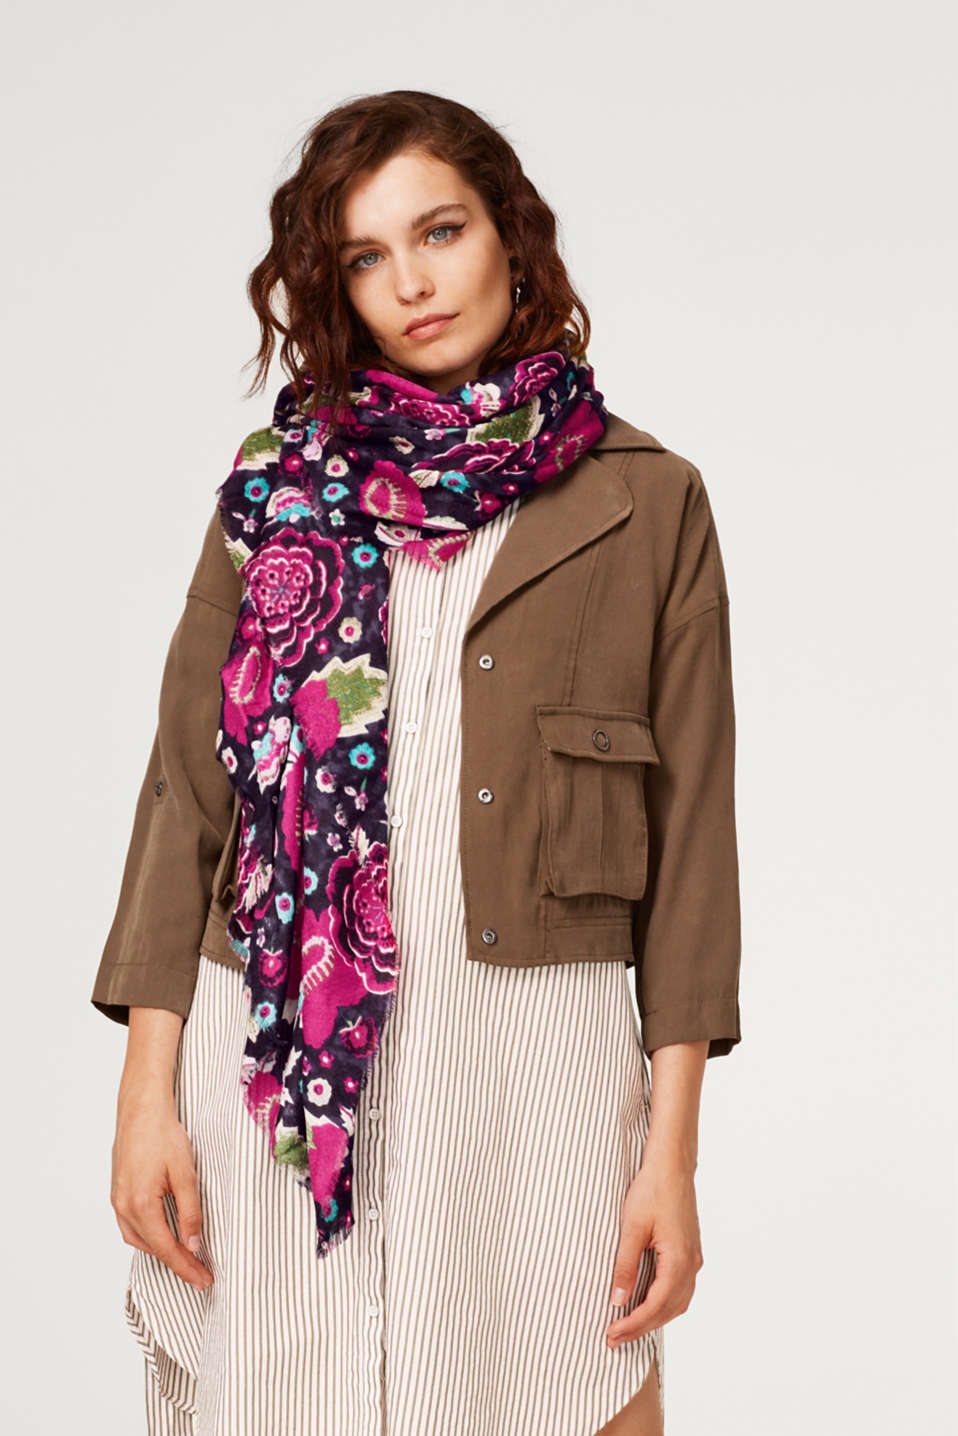 Textured scarf with a floral print